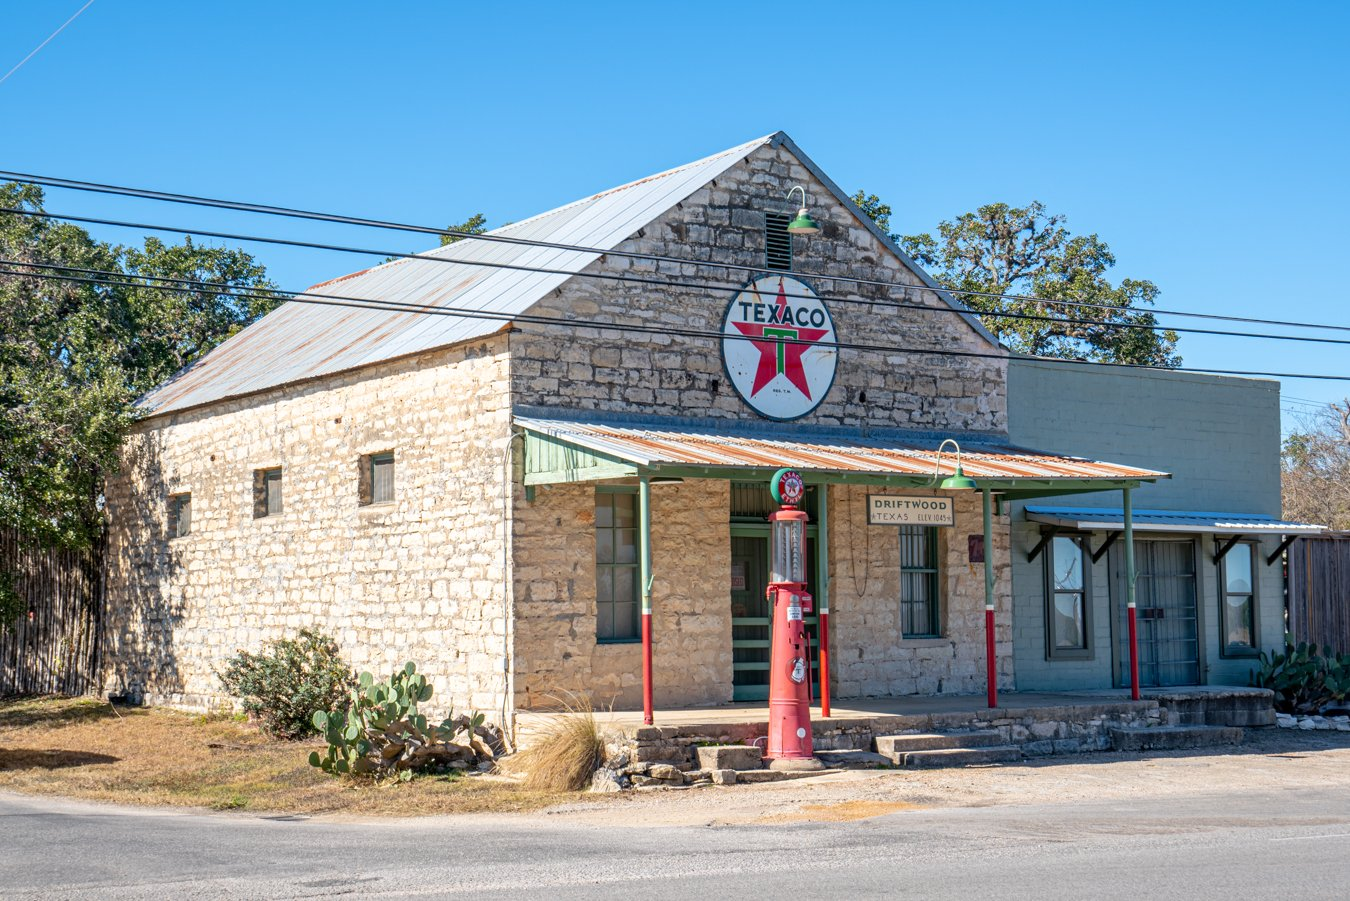 historic texaco stand, one of the best places to visit in driftwood tx